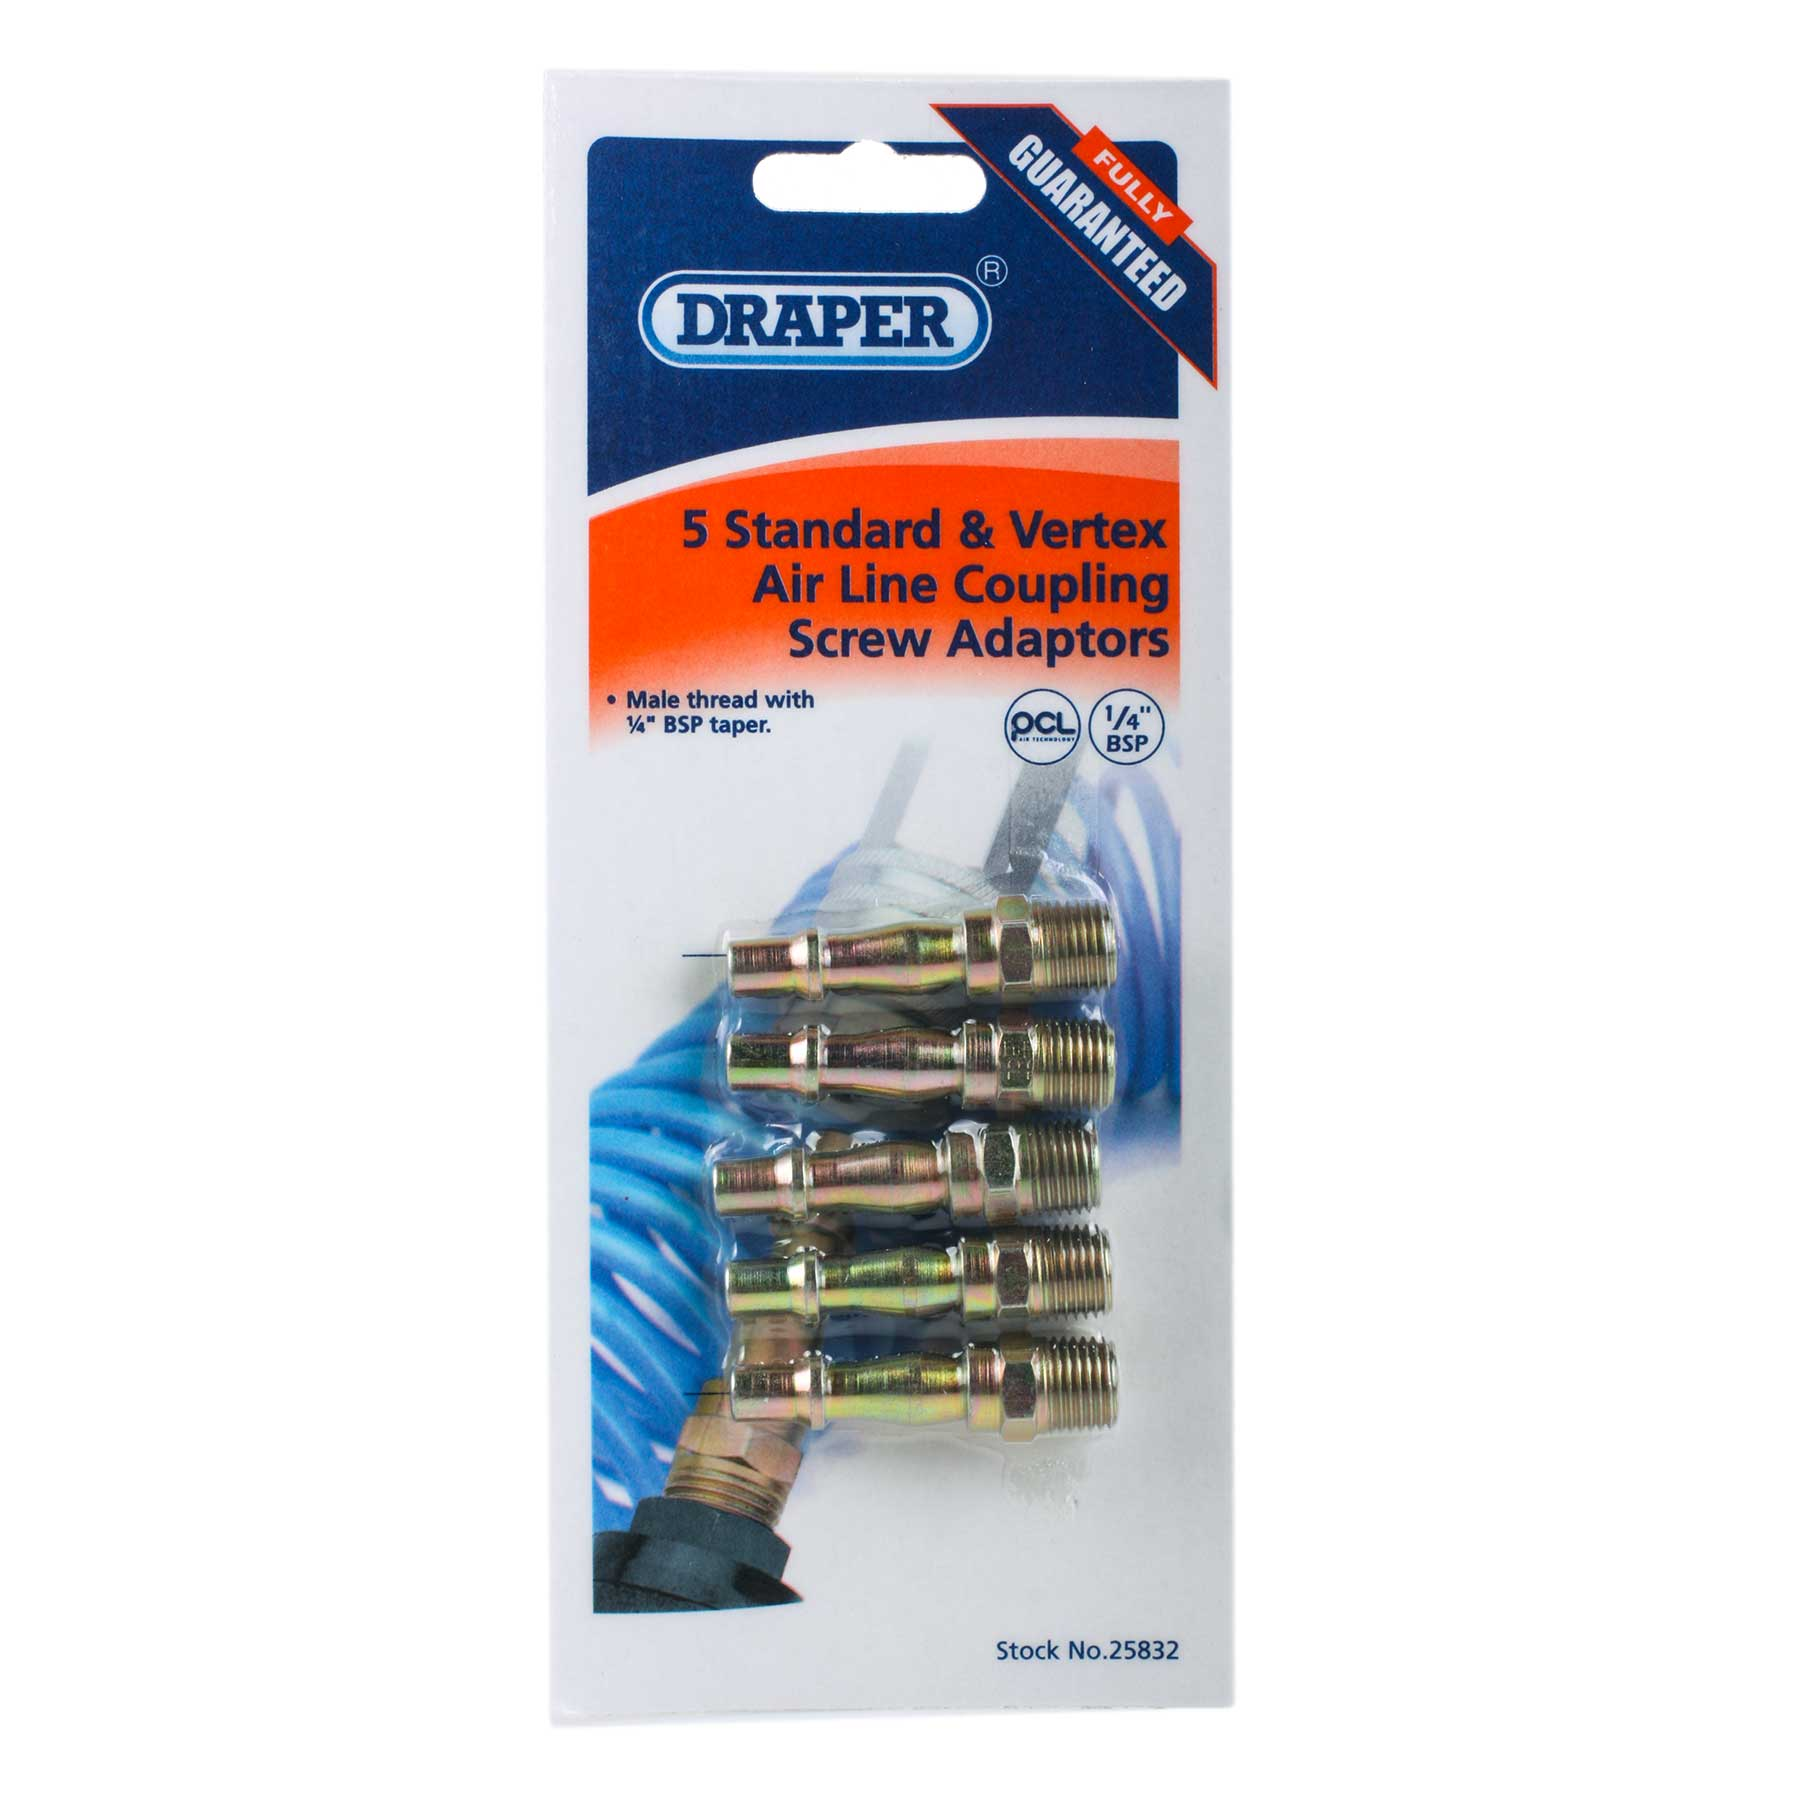 Draper 25832 A2593 5 Pack Air Tools 1/4 BSP Screwed Connectors Thumbnail 3